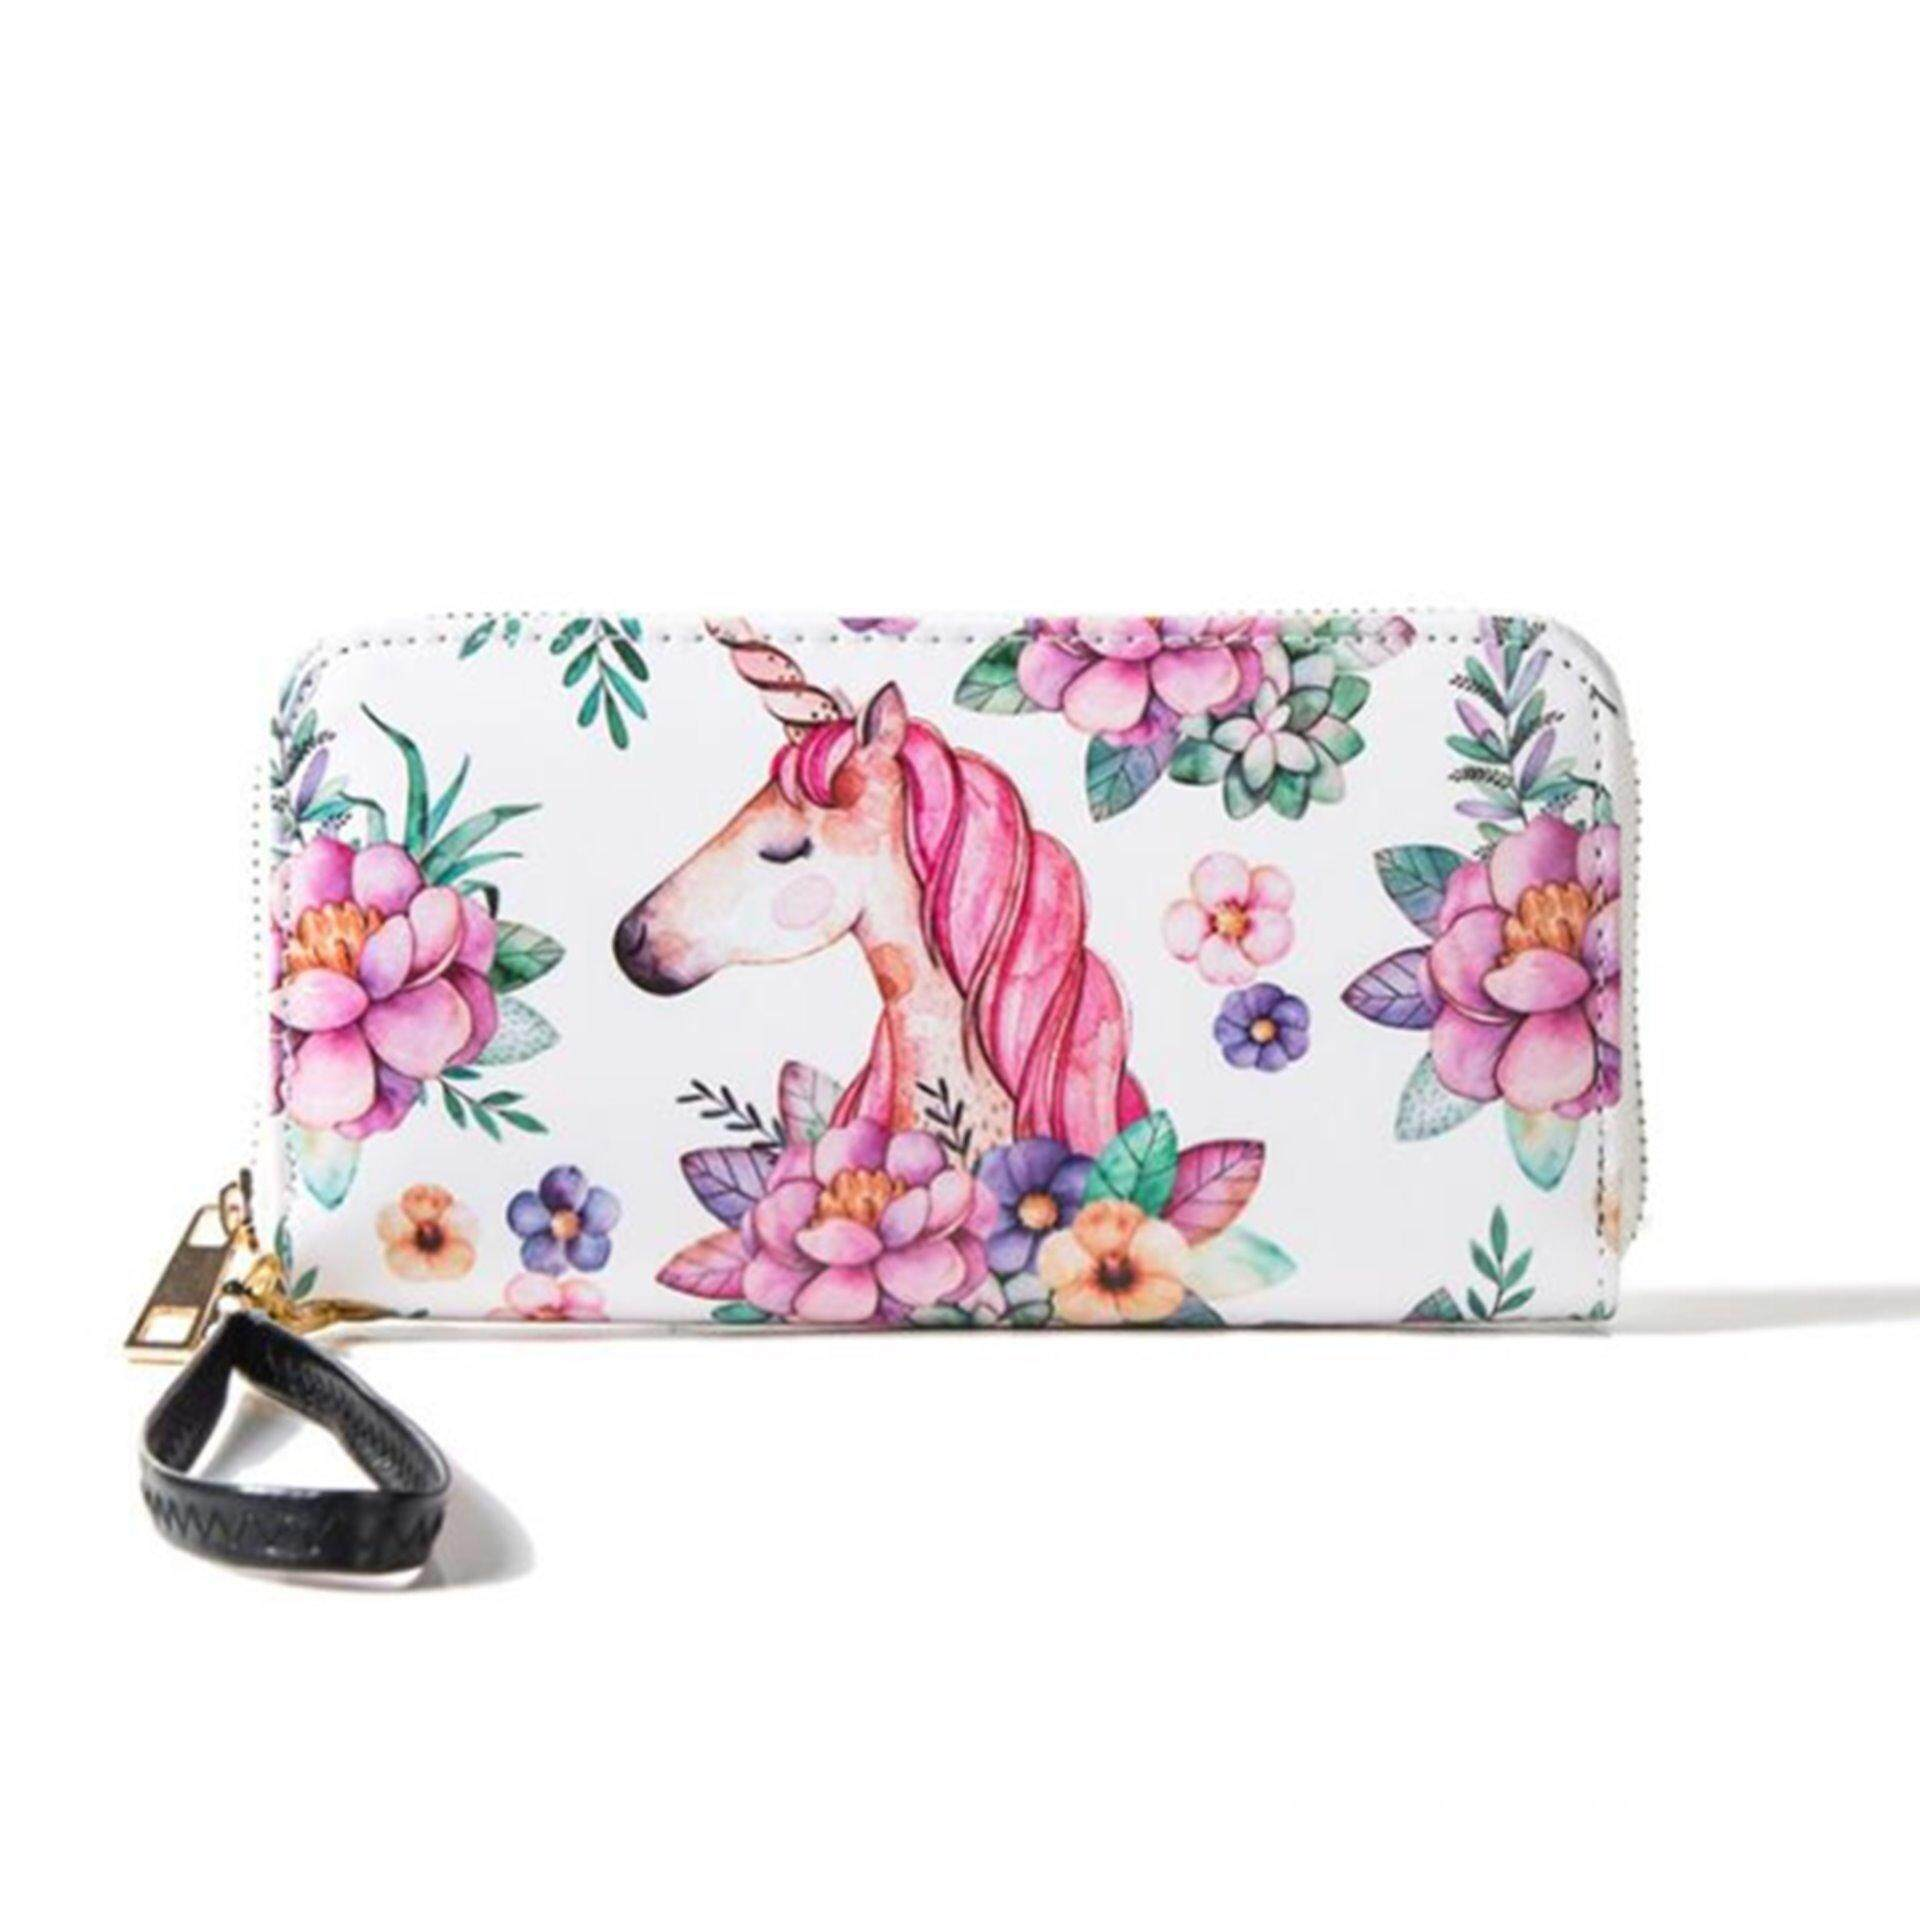 Buying Unicorn Women Long Leather Wallet Clutch Purse Card Holder Phone Zipper Handbag Intl